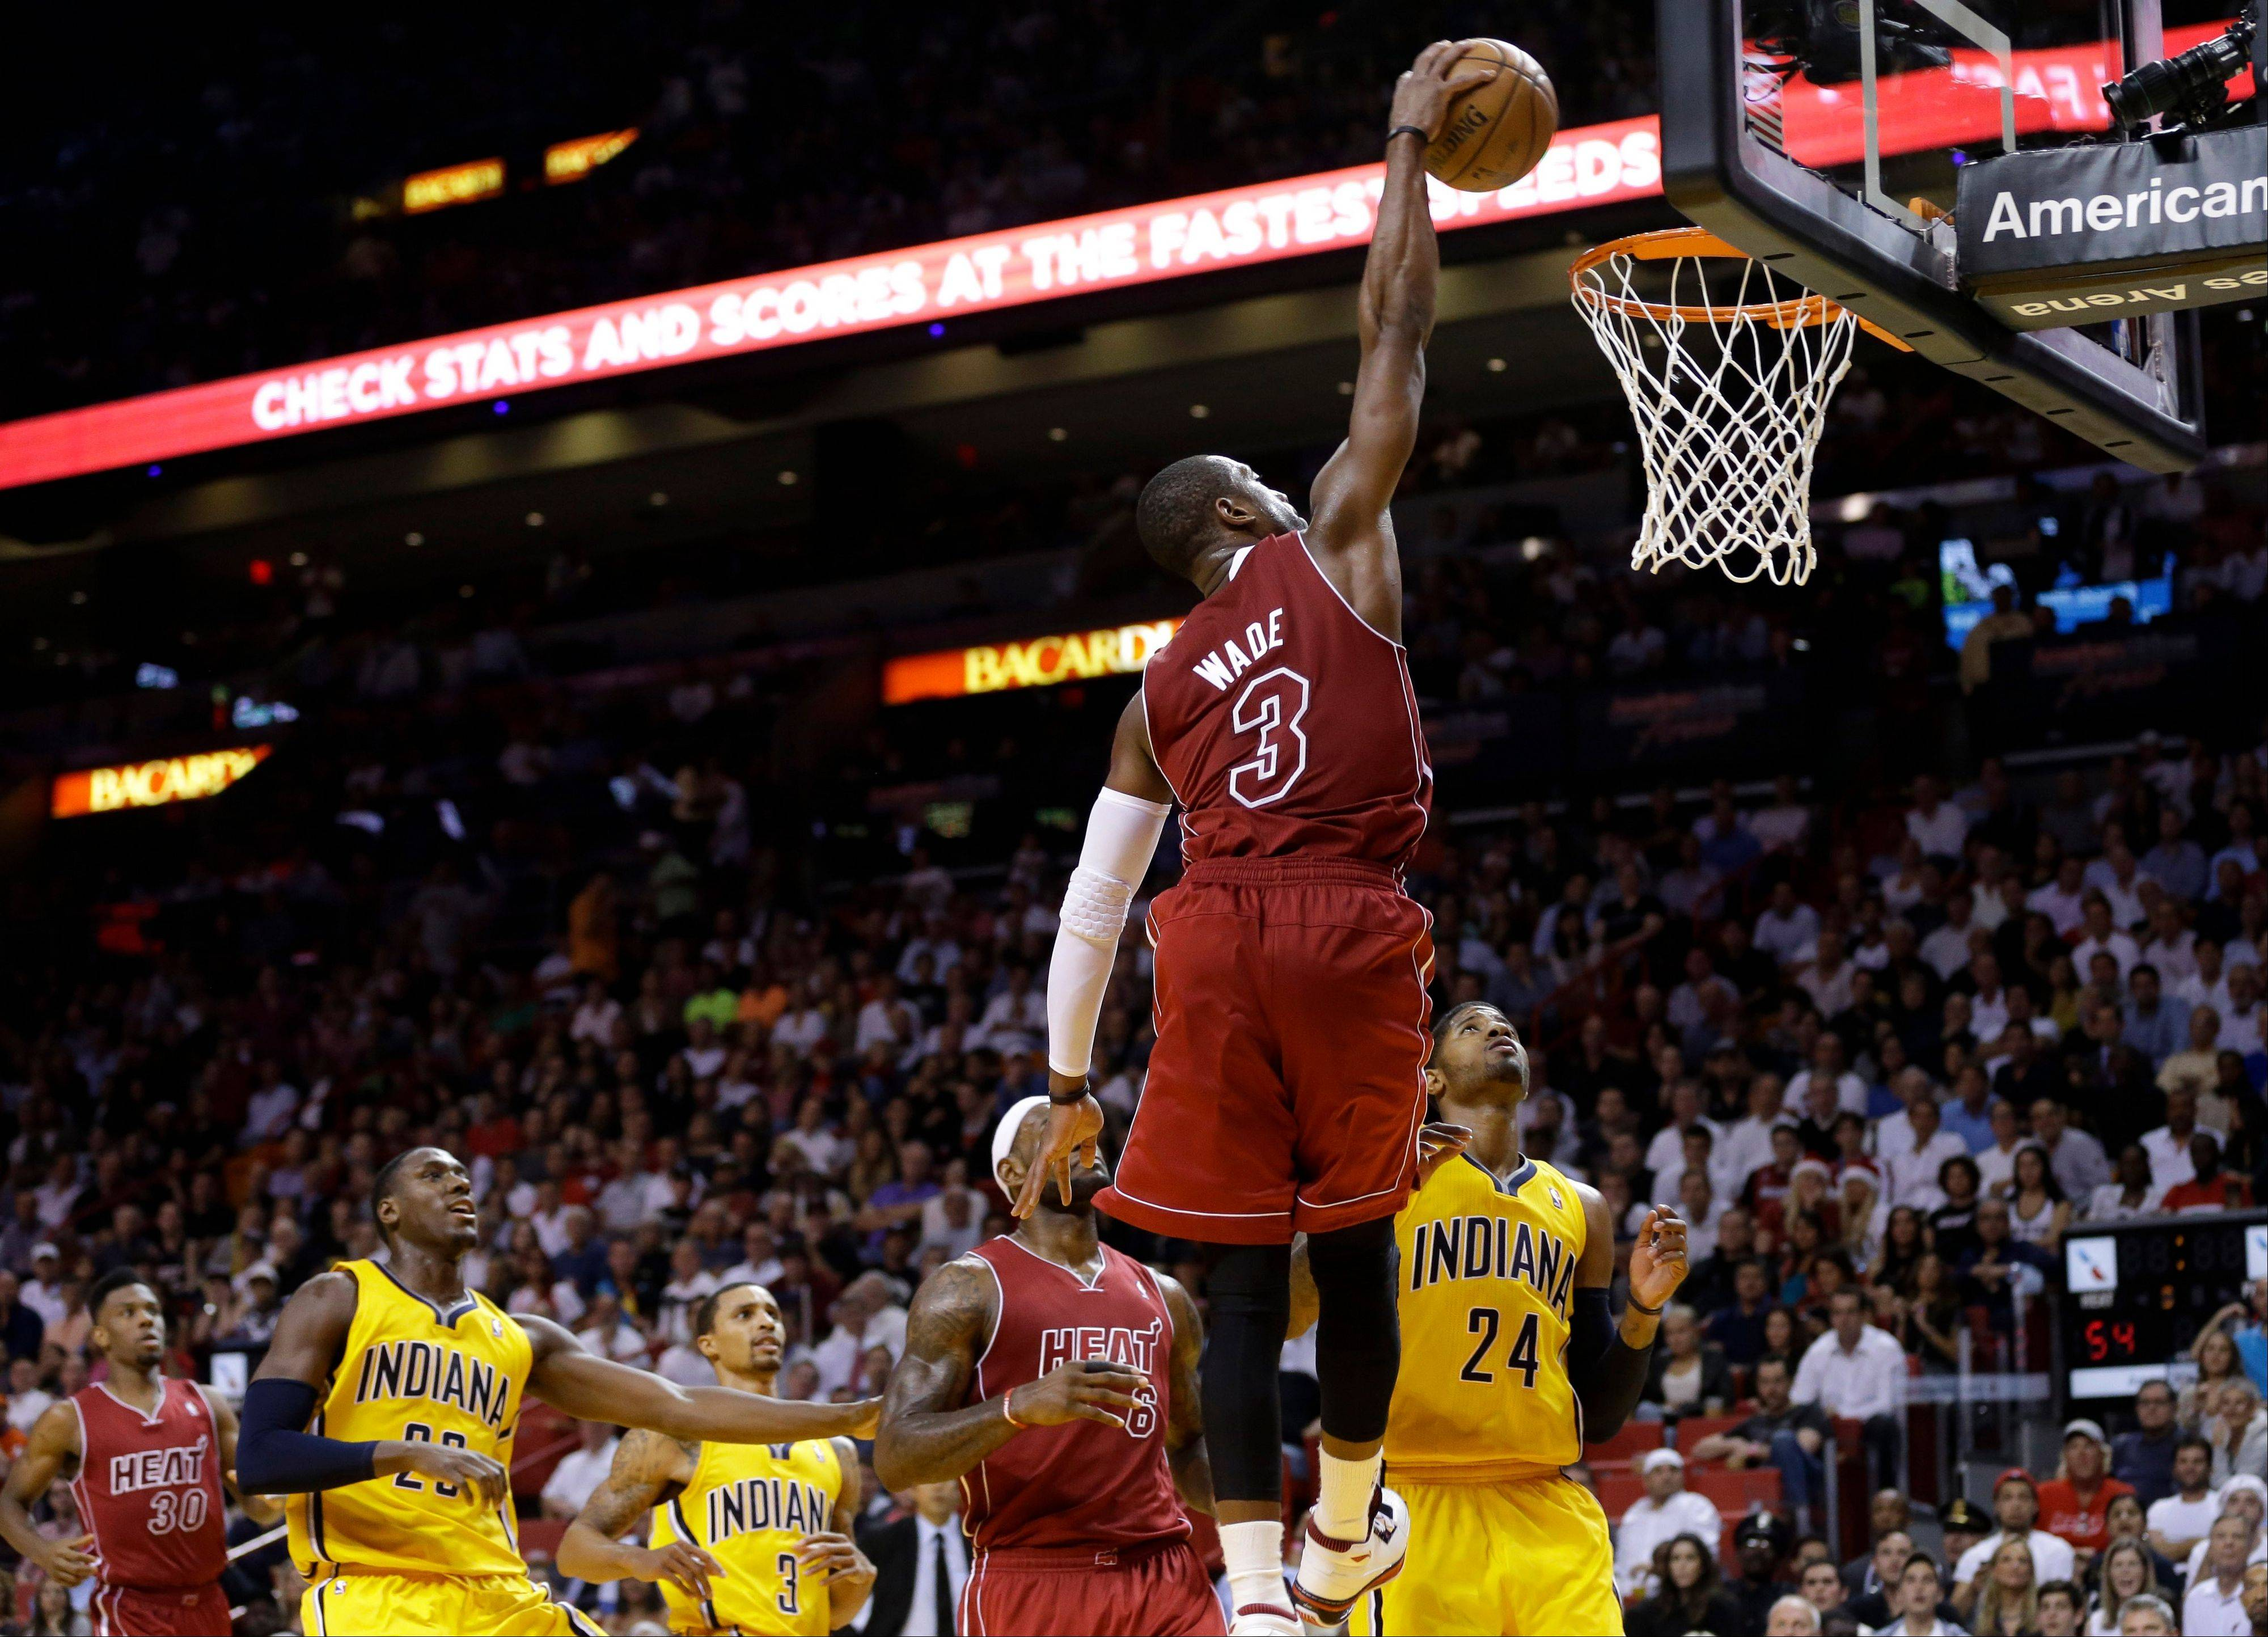 Miami Heat�s Dwyane Wade (3) dunks over Indiana Pacers� Ian Mahinmi, left, and Paul George (24) during the second half of an NBA basketball game Wednesday in Miami. The Heat defeated the Pacers 97-94.